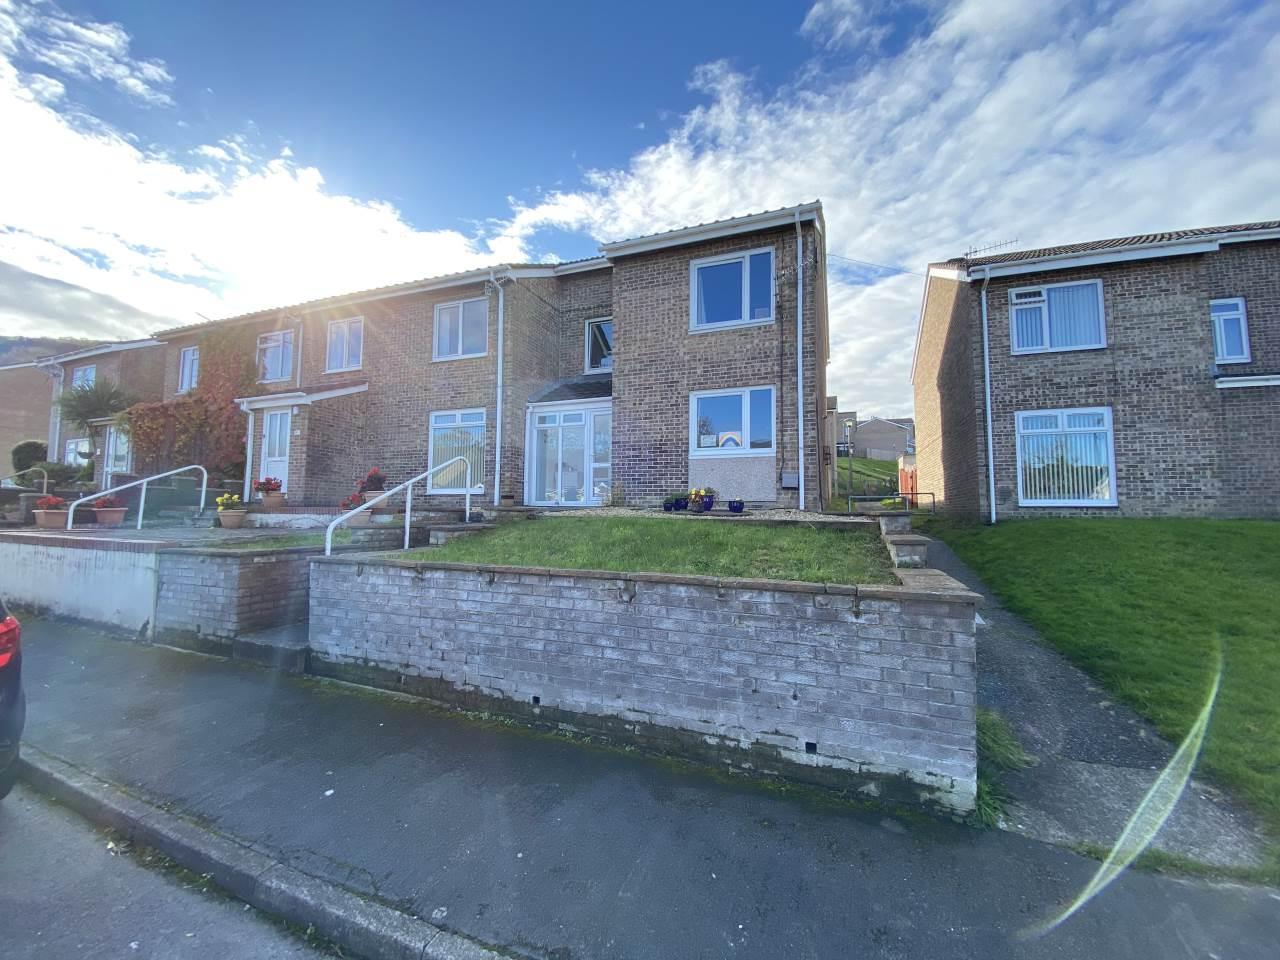 3 bed semi-detached house for sale in Heol Tyn Y Fron, Penparcau, SY23